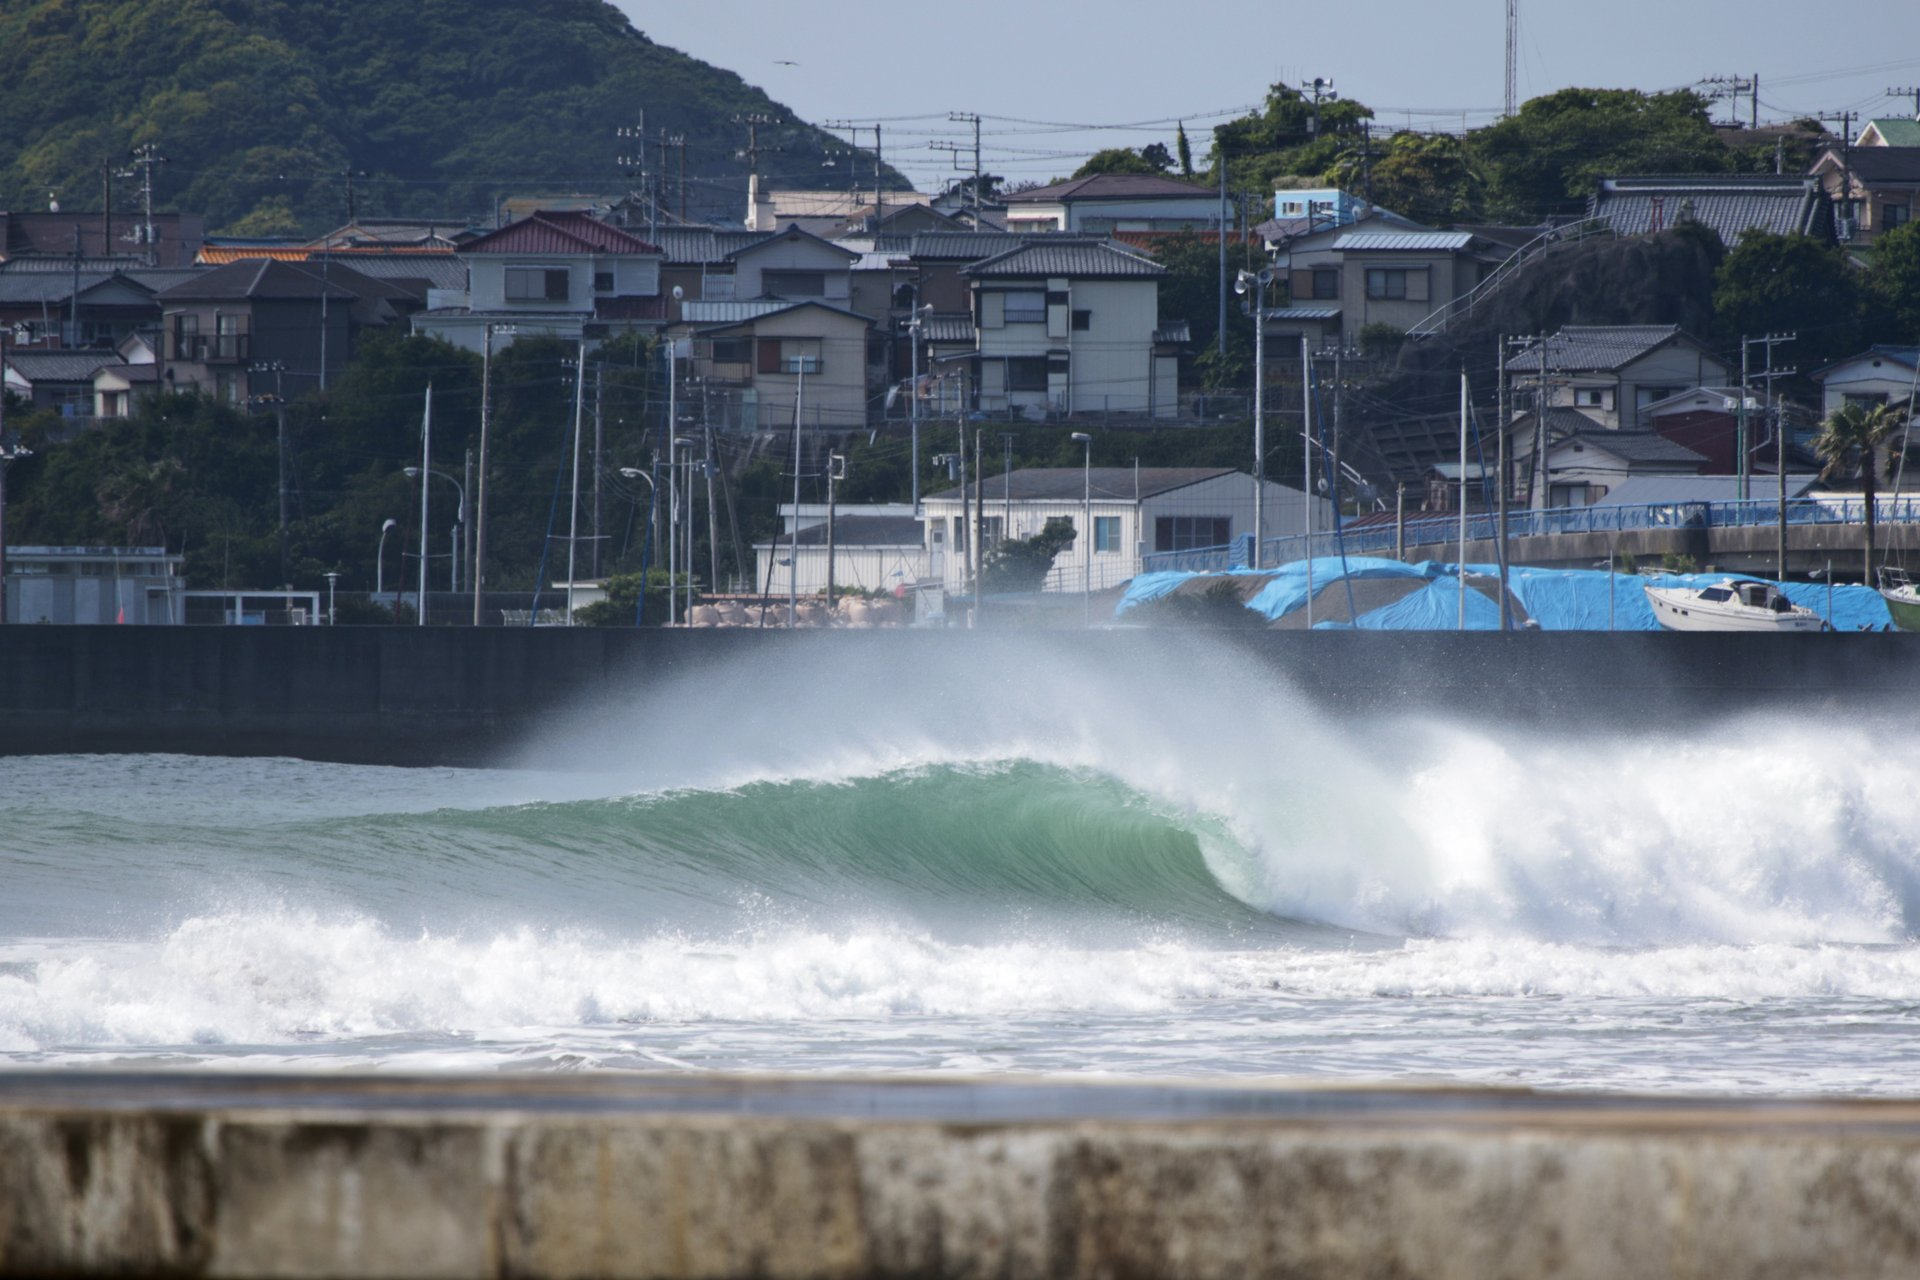 Dave Yamaya's photo of Kamogawa (Big Ben)